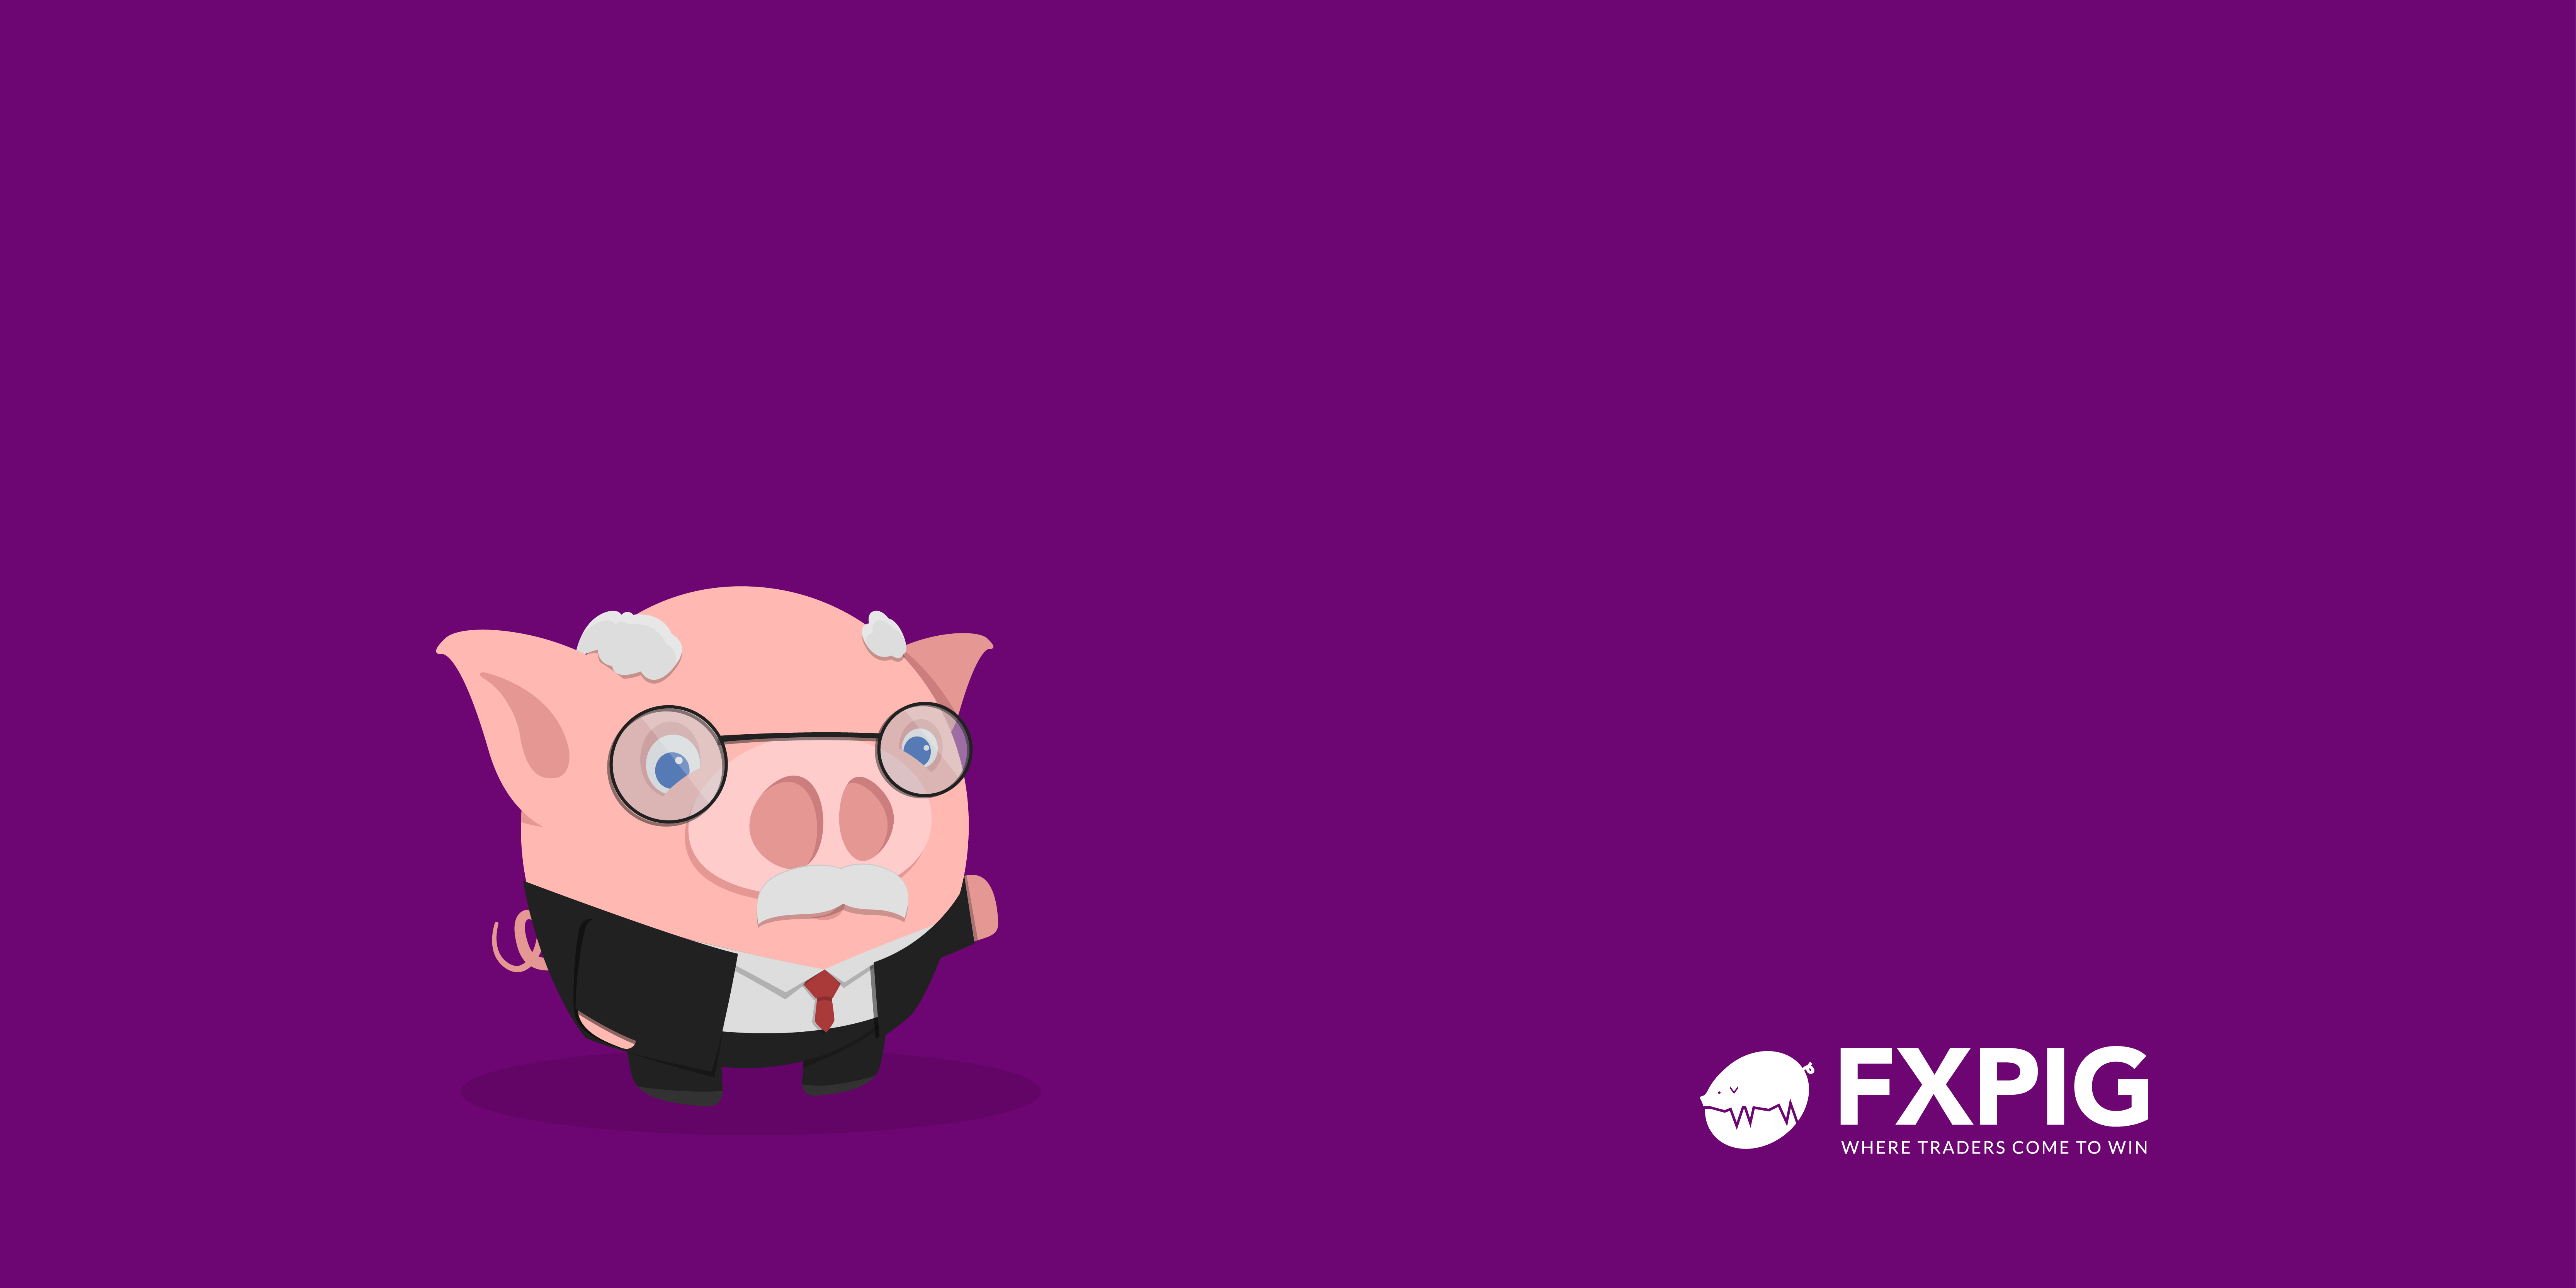 Trading_Wisdom_Forex_Time-Off_FXPIG